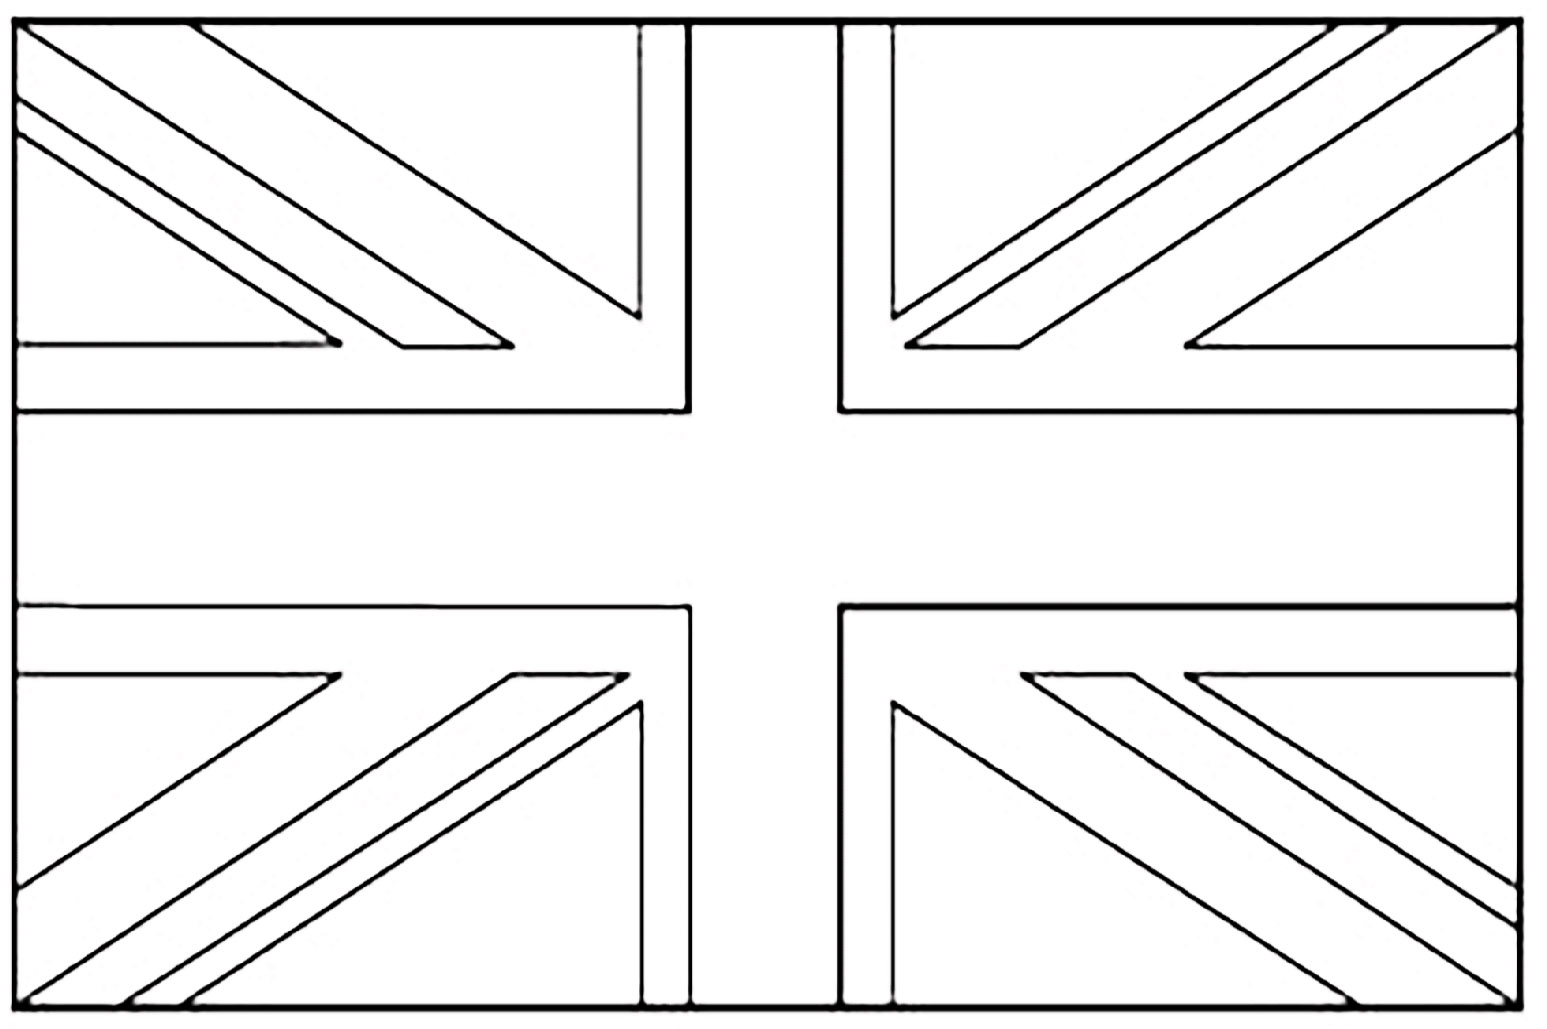 Uncategorized Flag Of England Coloring Page united kingdom union jack flags coloring pages for kids to print flag of color from the gallery flags